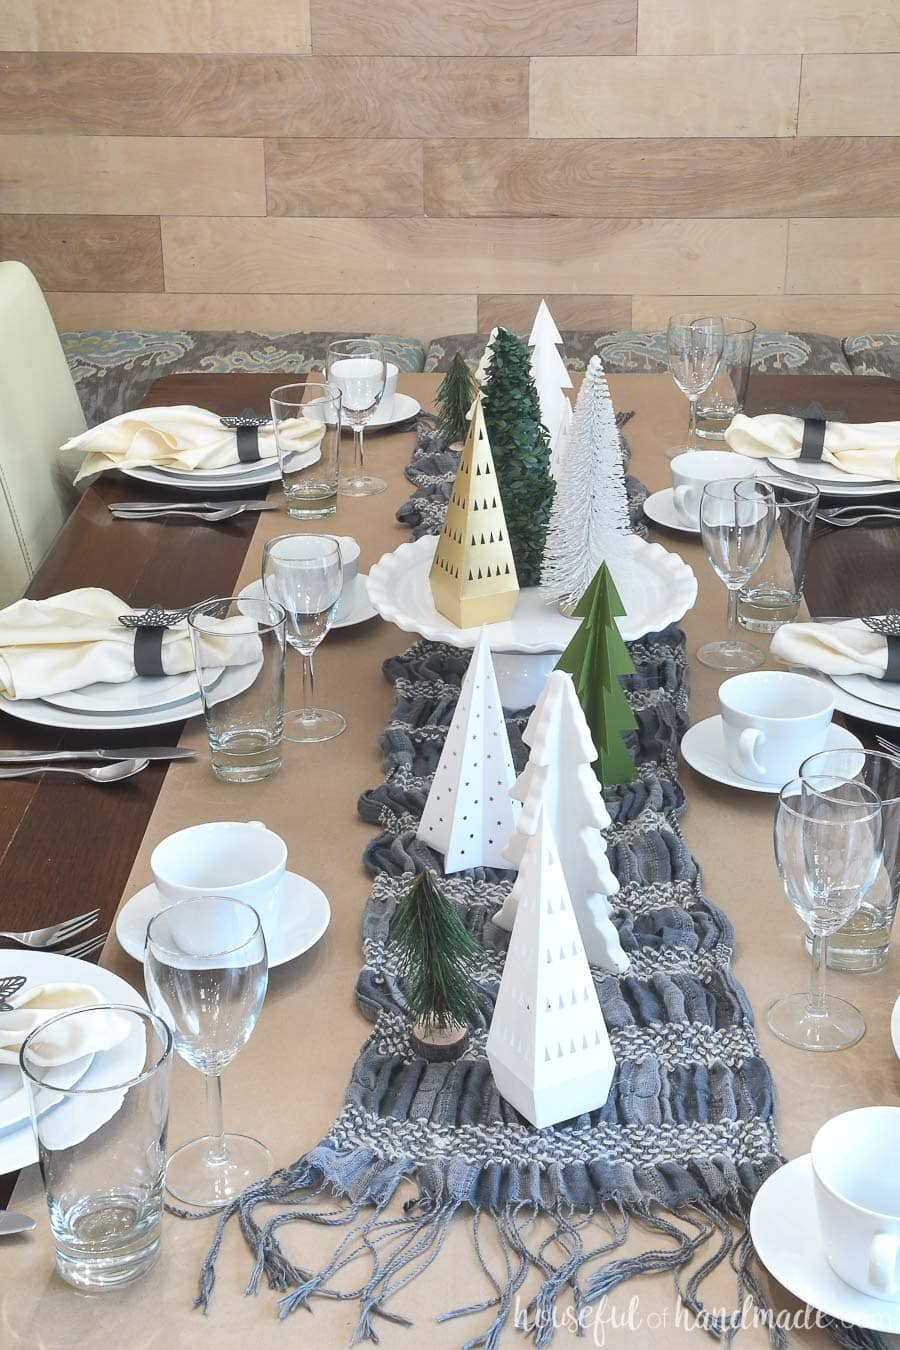 Papercraft winter tablescape with brown paper, a winter scarf, and trees made from paper.